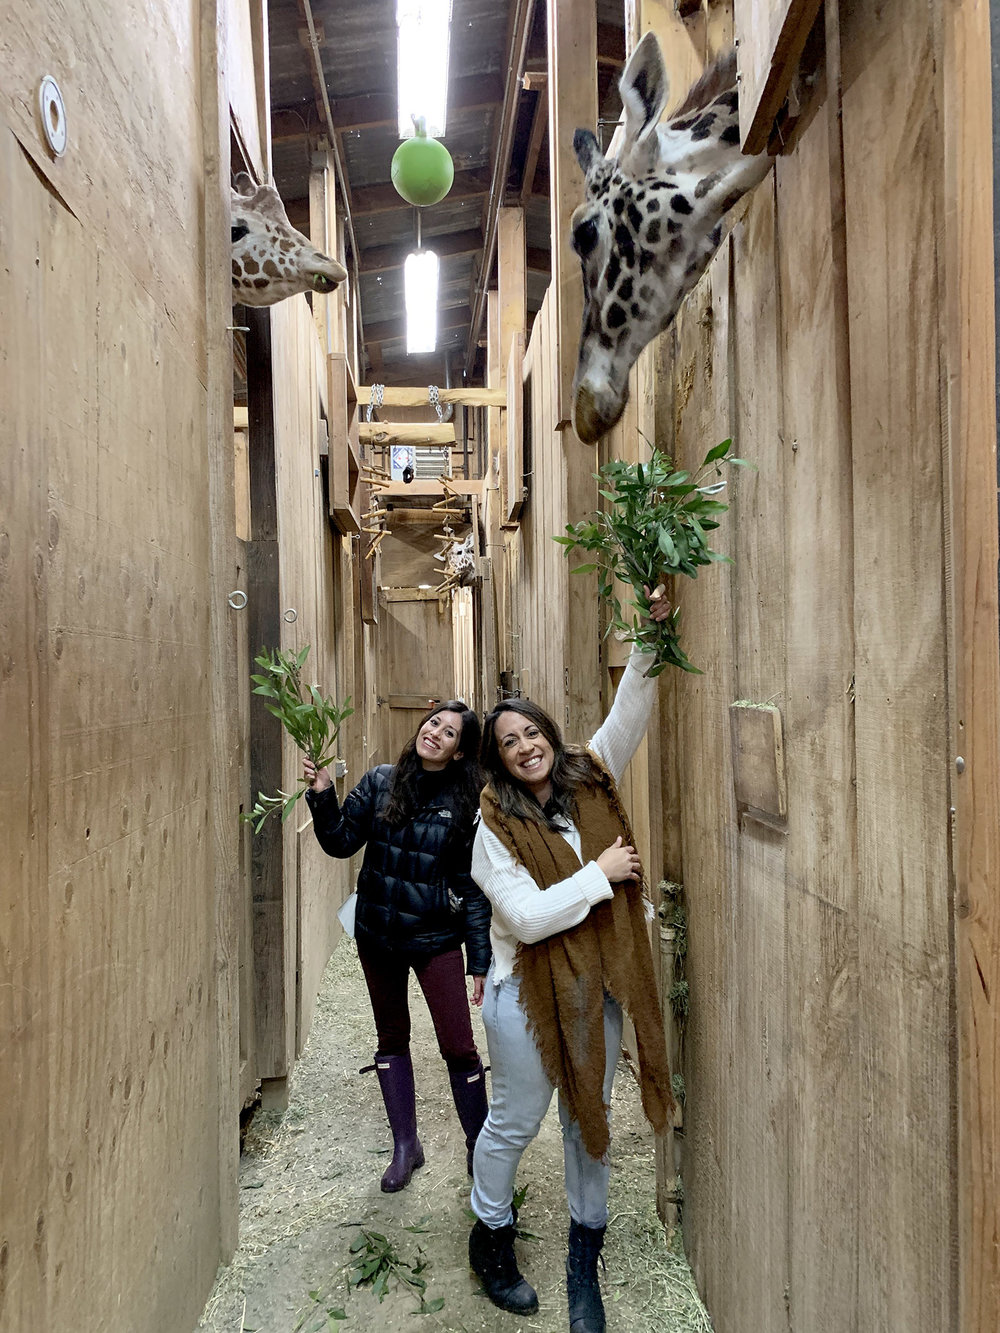 Vivian and I smiling with giraffes